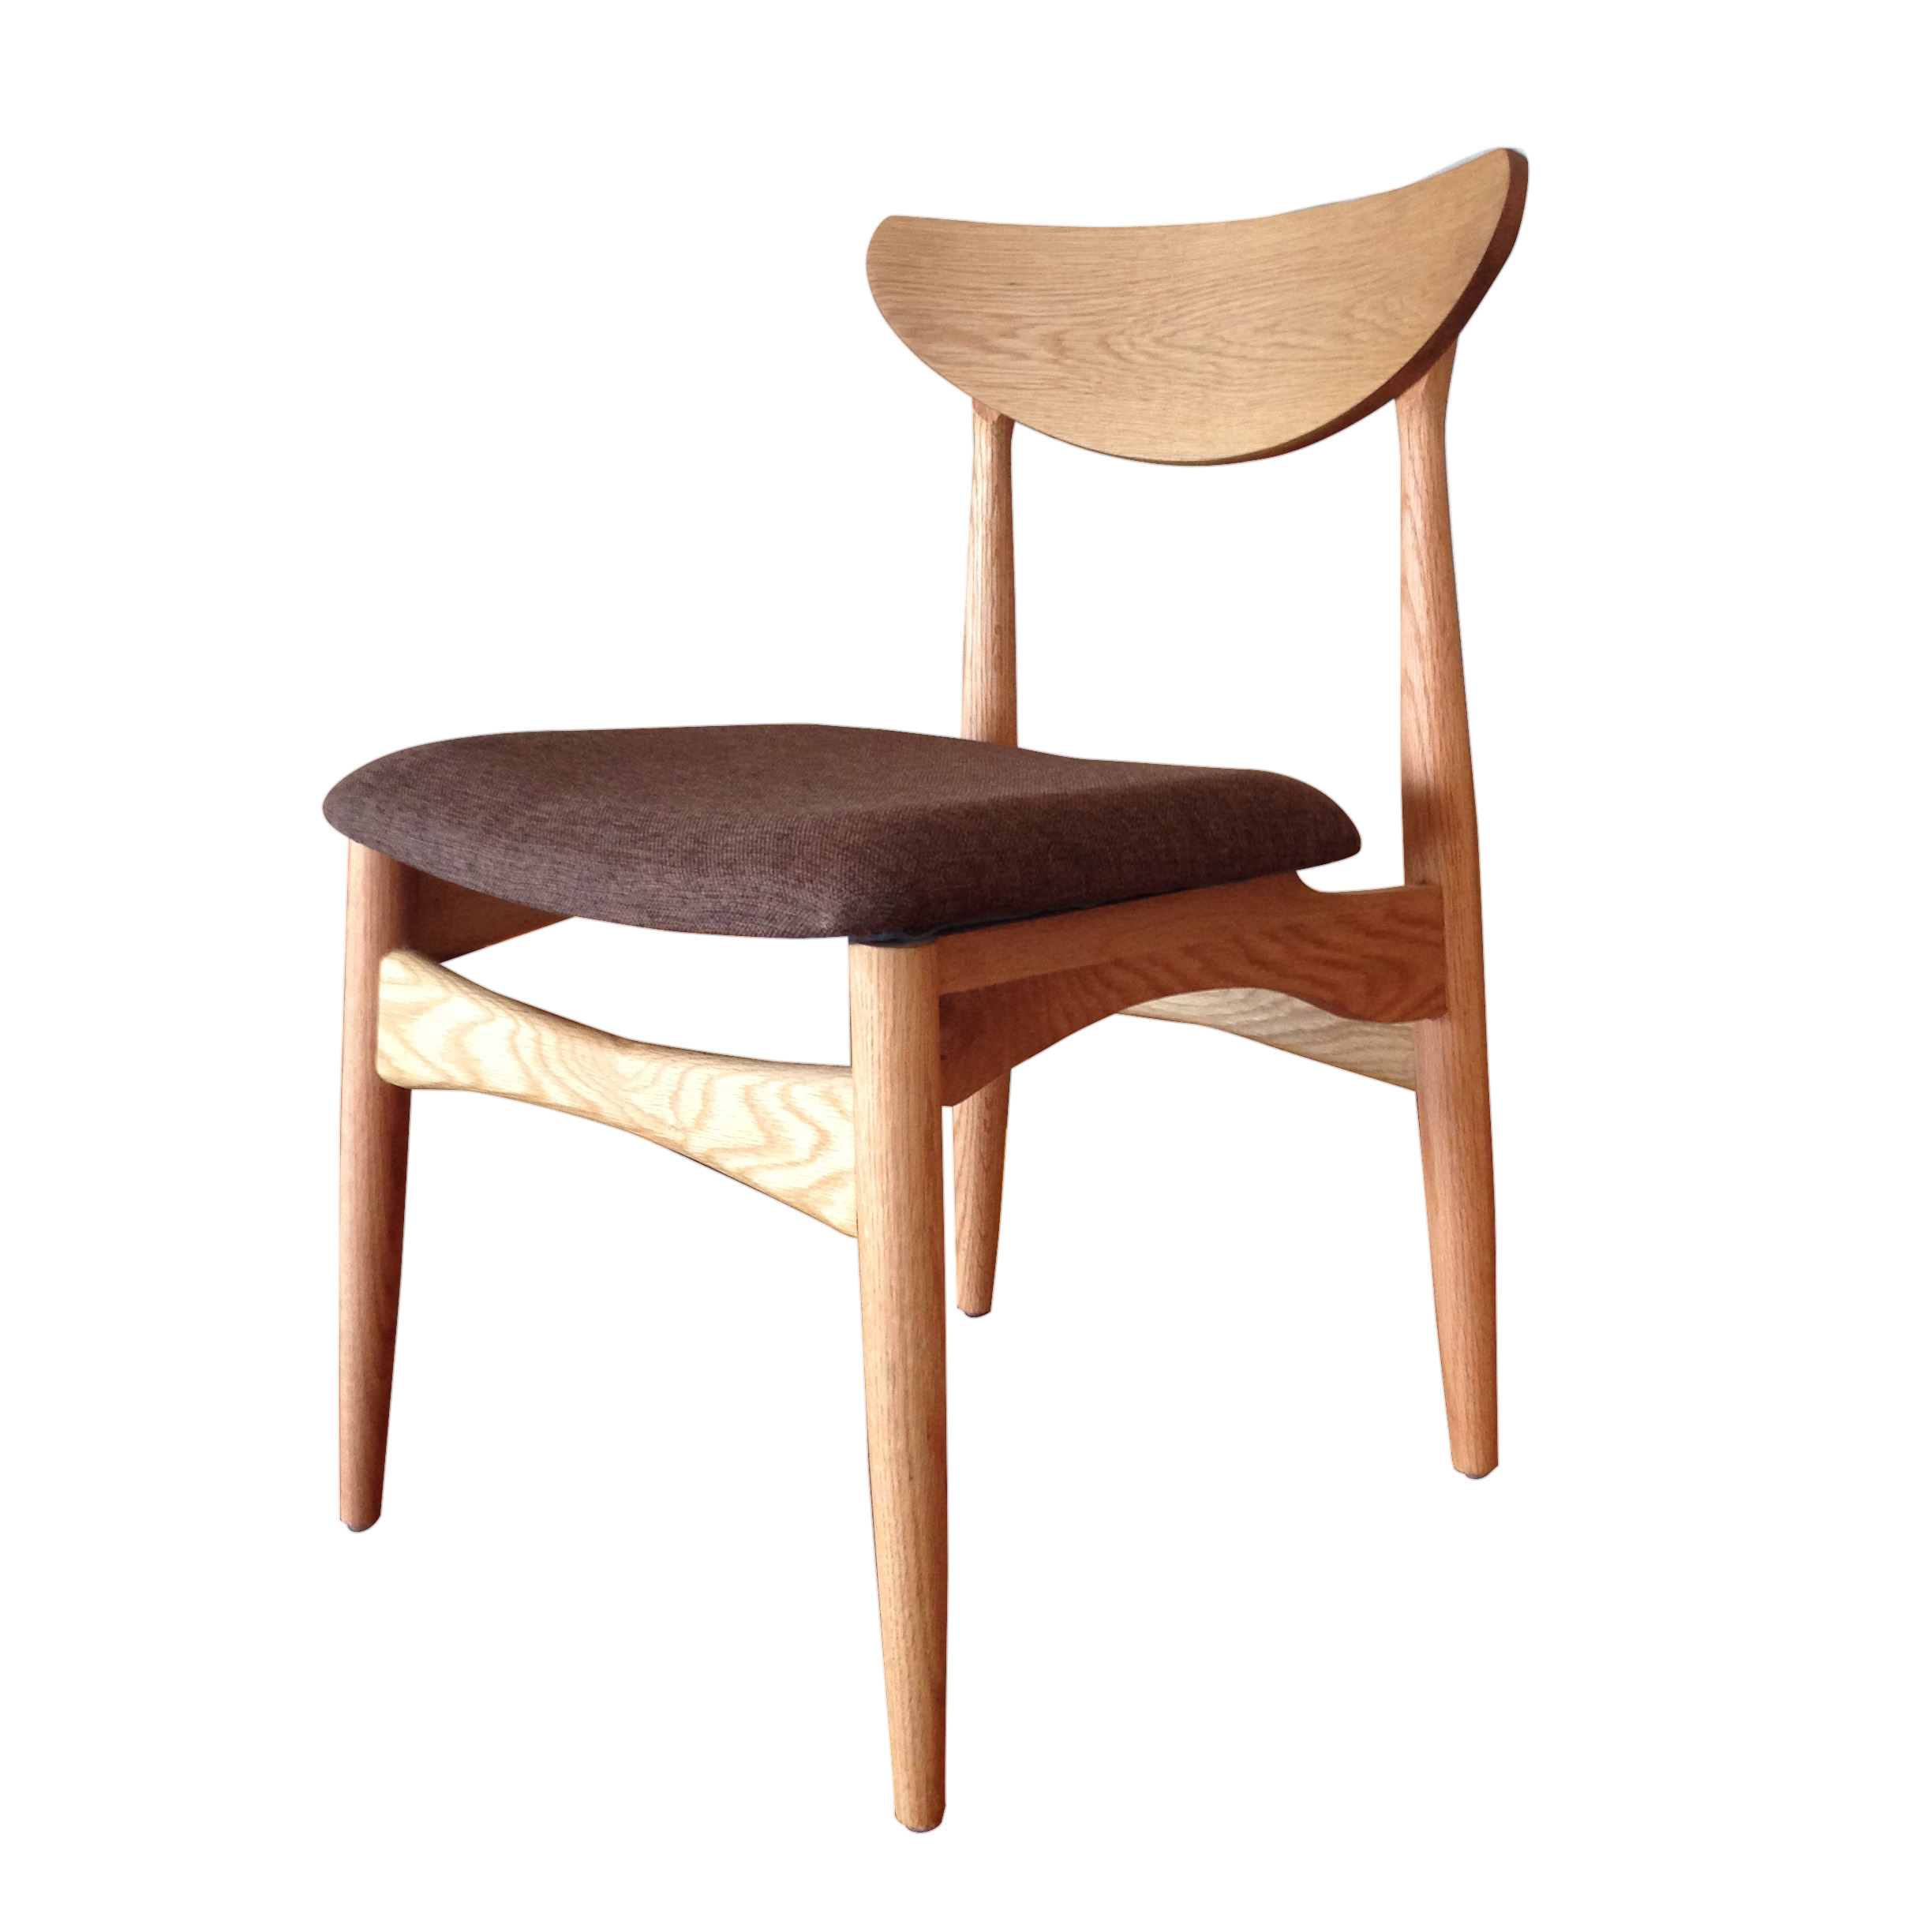 Small Unfinished Wood Dining Chairs